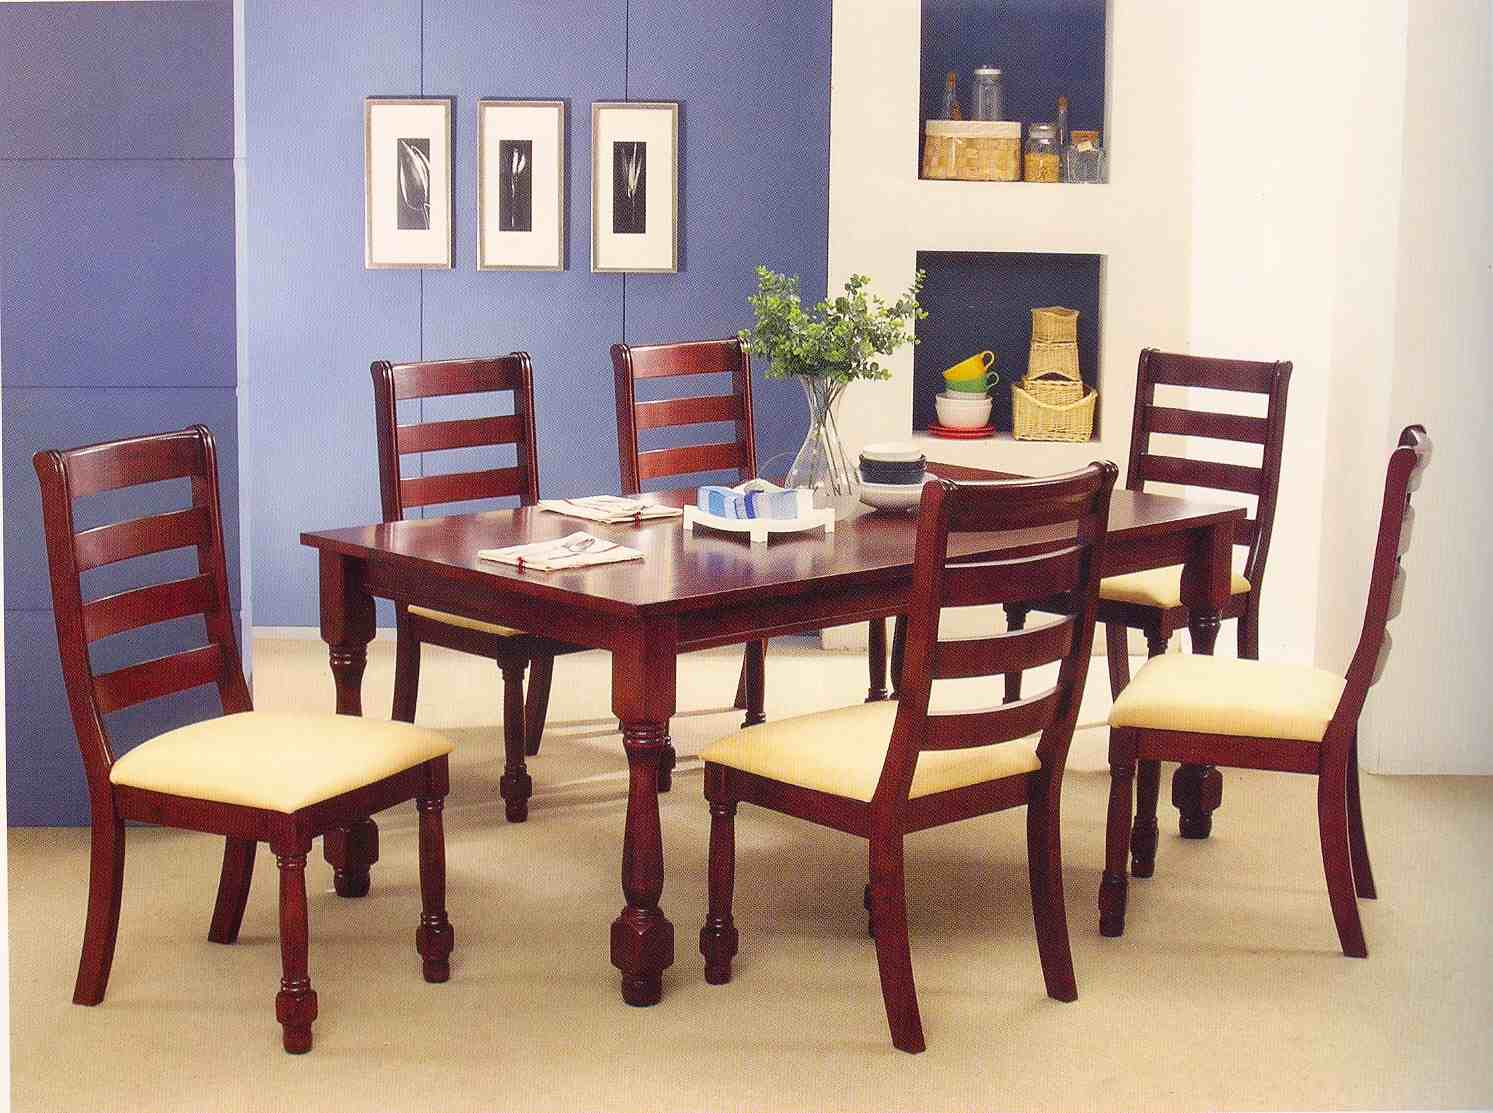 Dining room set for even more tastier meals home for Dining room set ideas